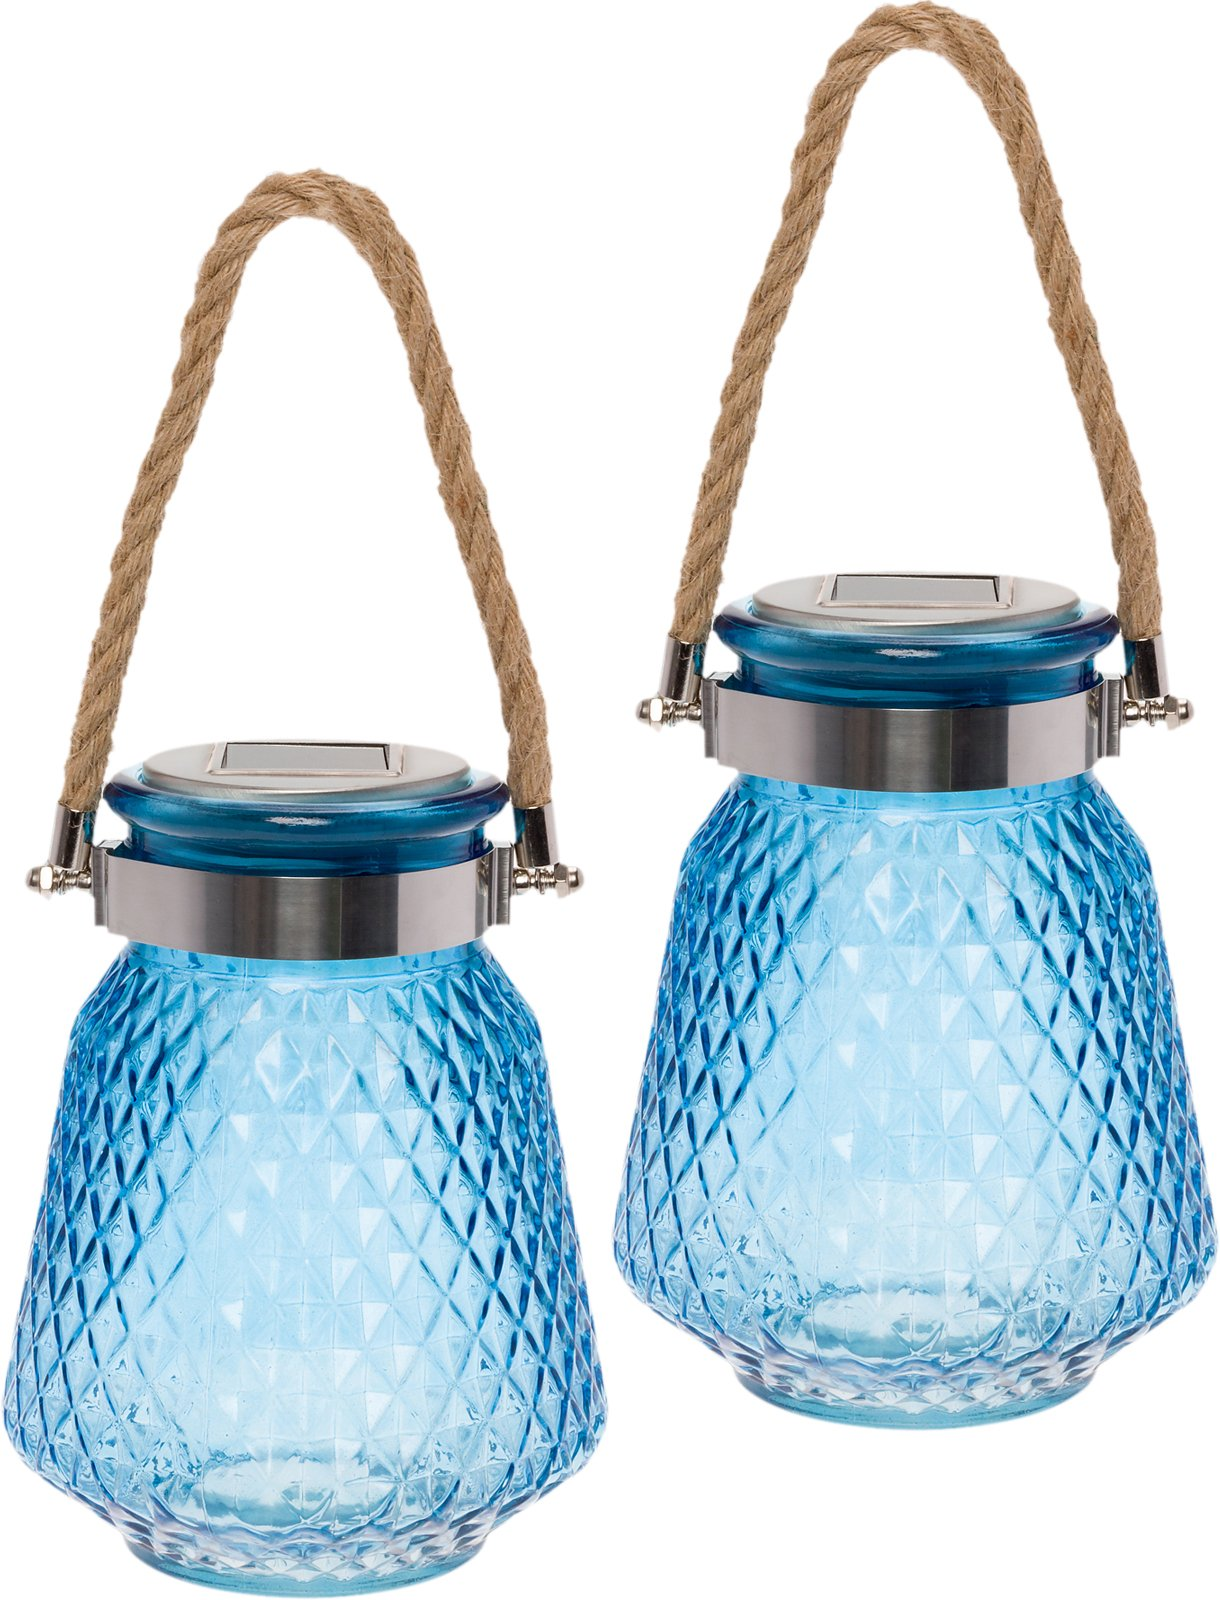 GreenLighting 2 Pack Solar Powered Mason Jar Light - Decorative LED Glass Table Light by (Blue)